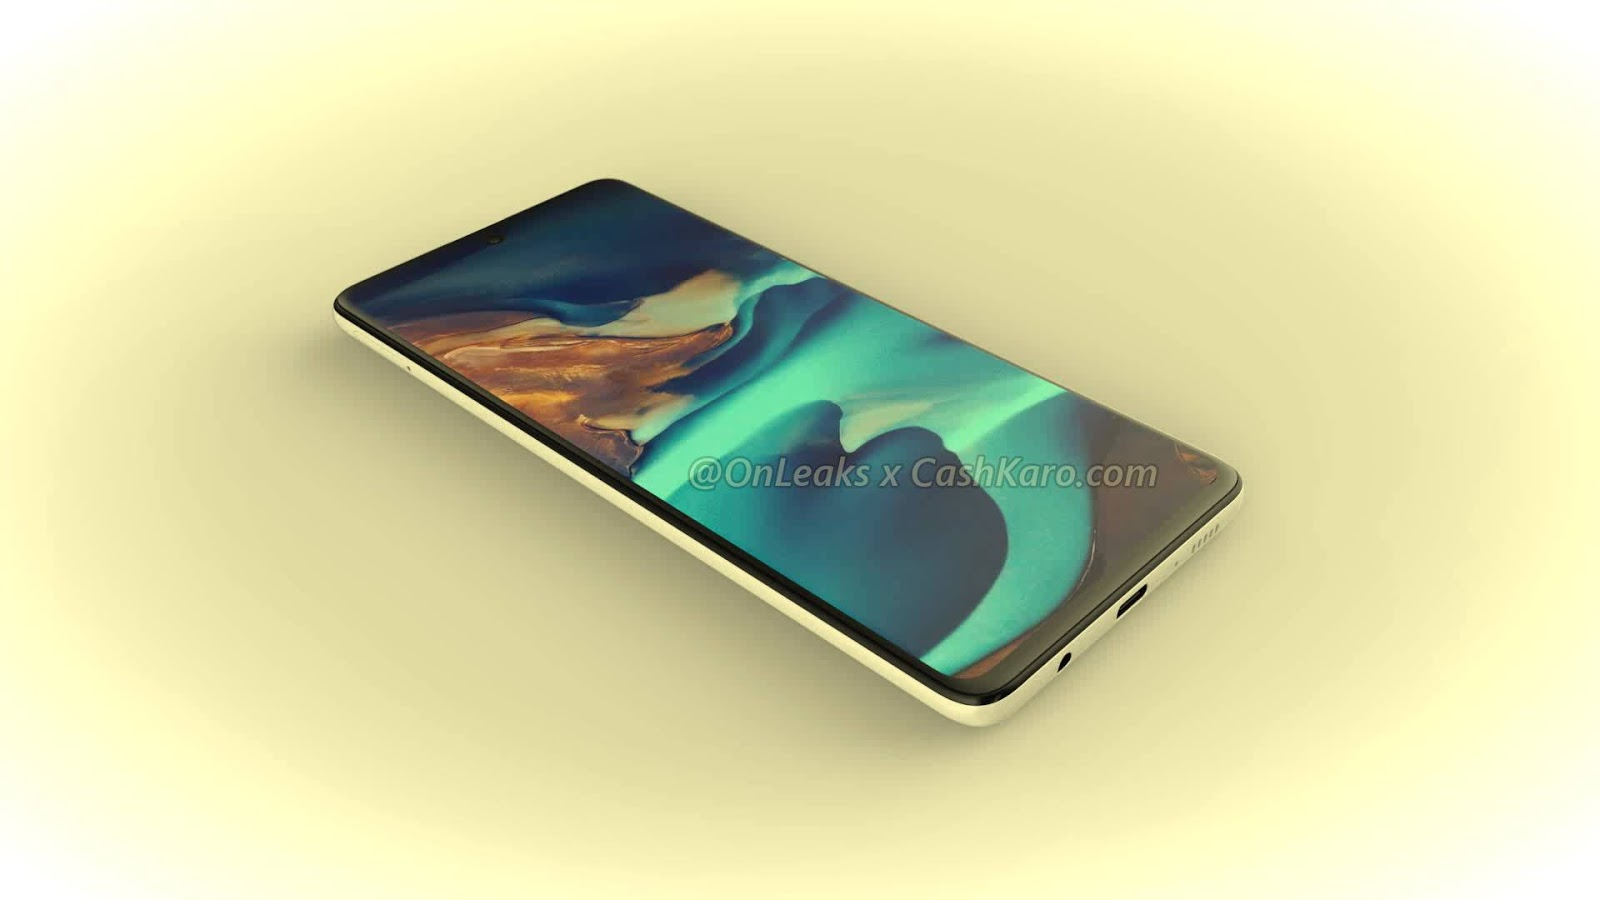 L-shaped quad camera and Infinity-O screen. Potential bestseller Samsung first poses on large renders